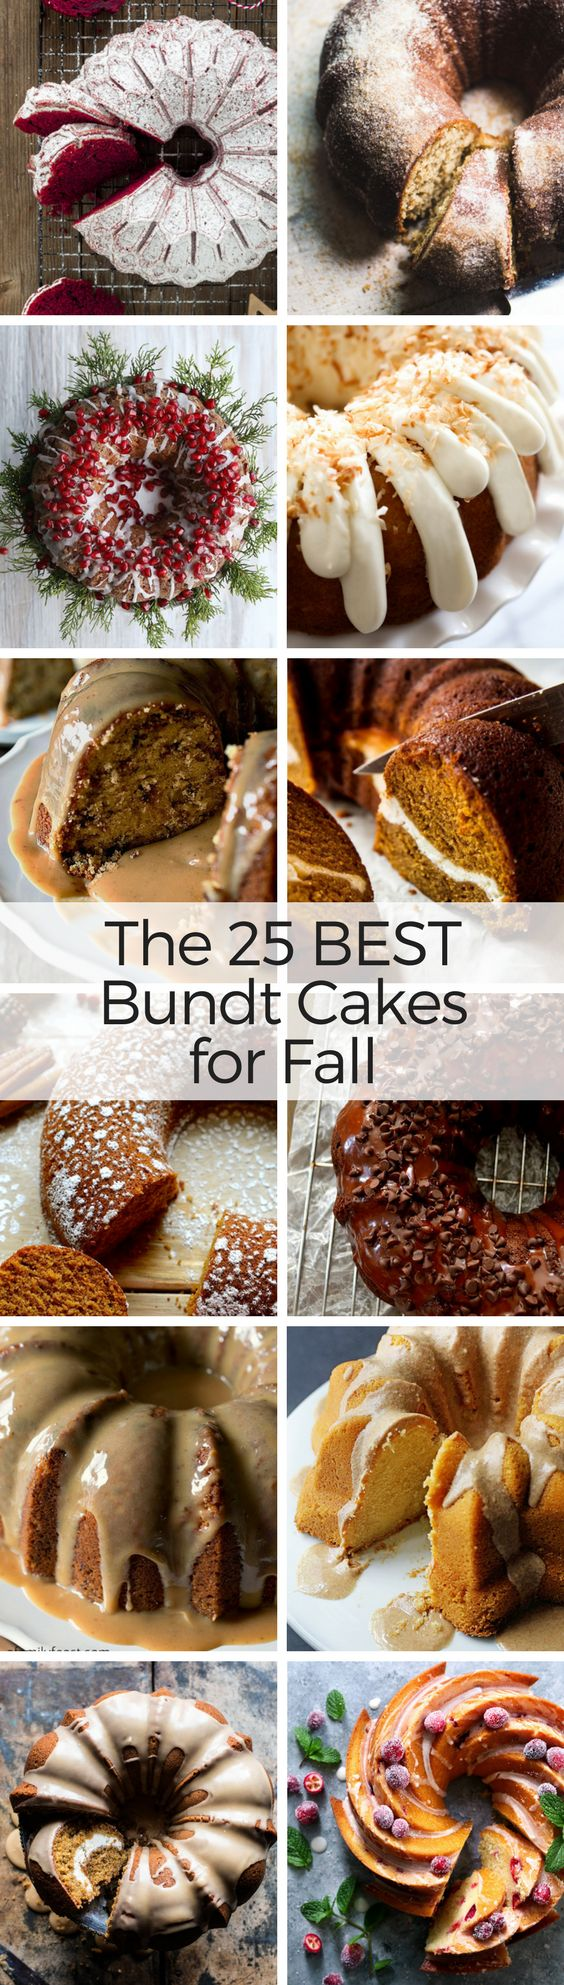 What to Bake Now: Bundt Cakes ~ what's not to love about a bundt? They're nice and homey, easy to throw together, pretty enough for company, and so darned delicious. Here are 25 of my favorite bundt cakes for fall, plus some essential tips and tricks to help you master the art of the perfect bundt ~ #cake #fallcake #bestbundtcakes #dessert #falldessert #pumpkincake #chocolatecake #coffeecake